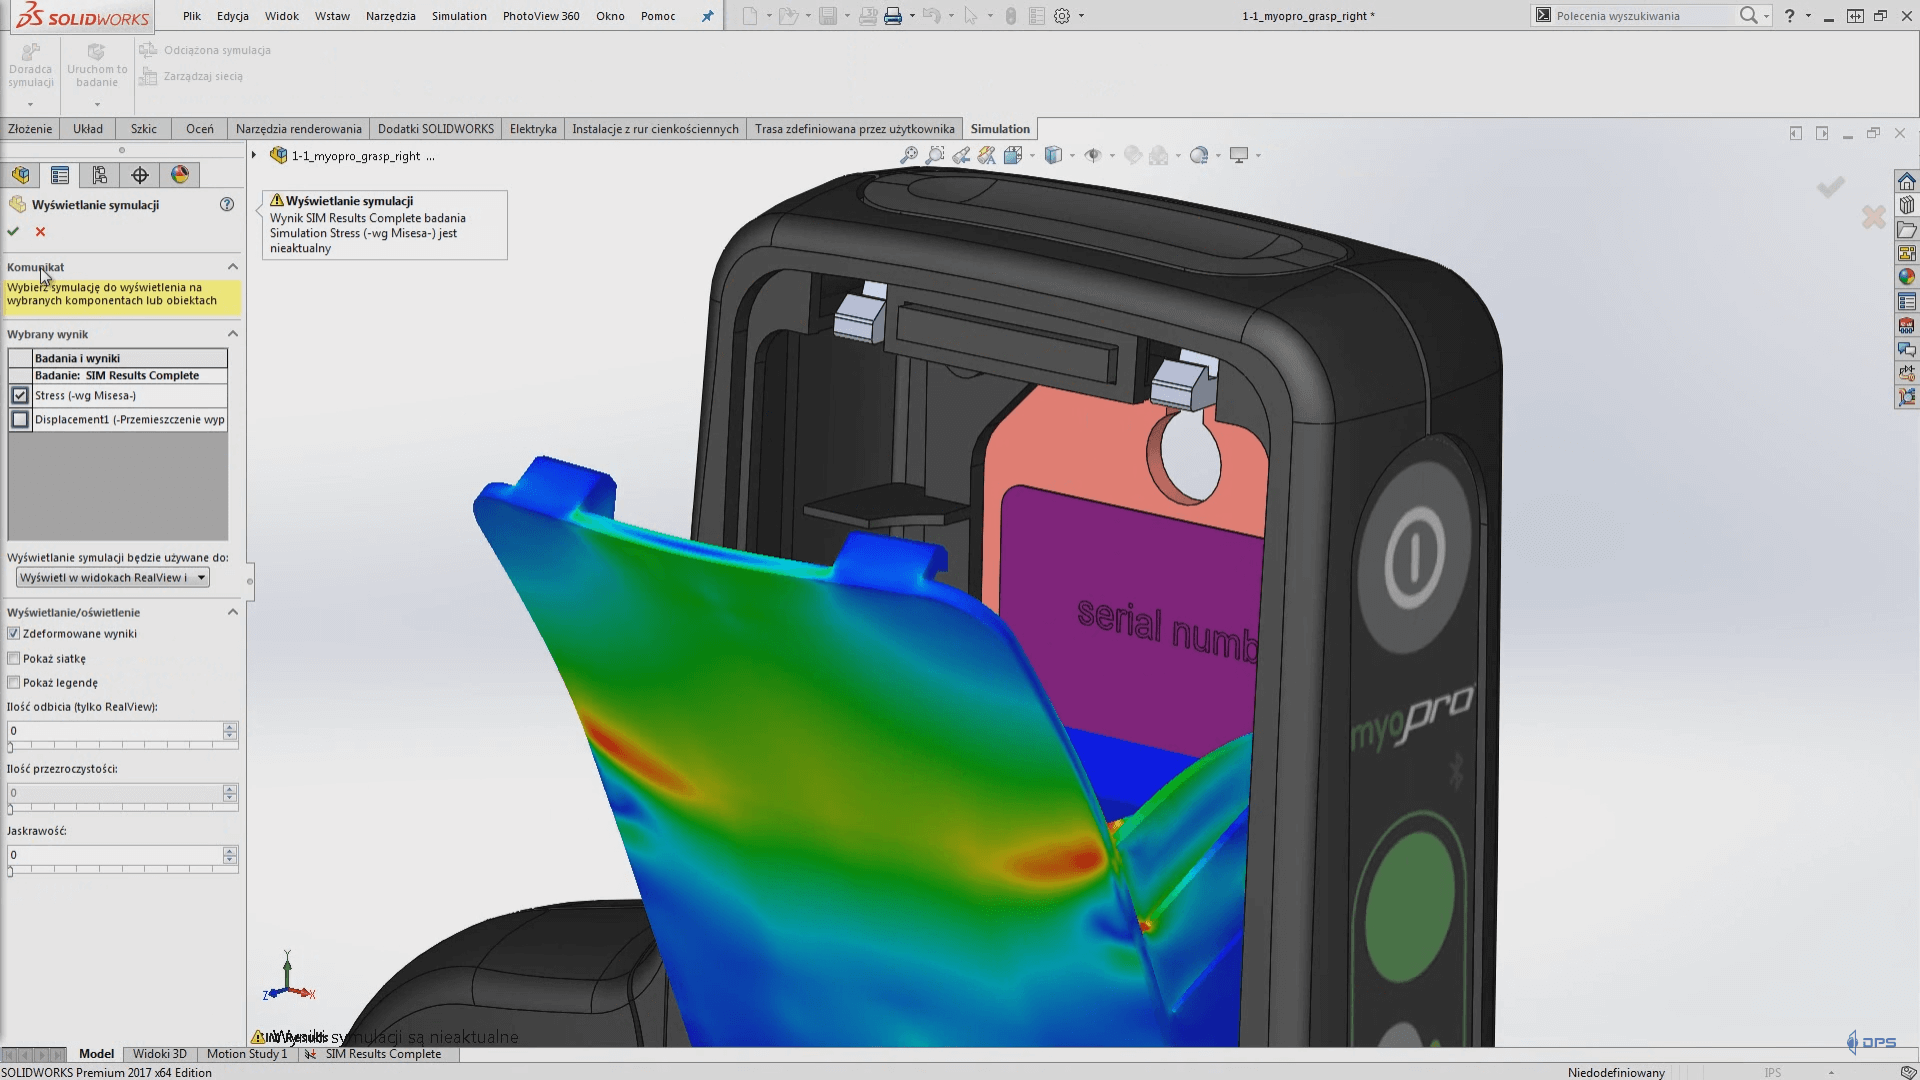 solidworks simulation photoview 360